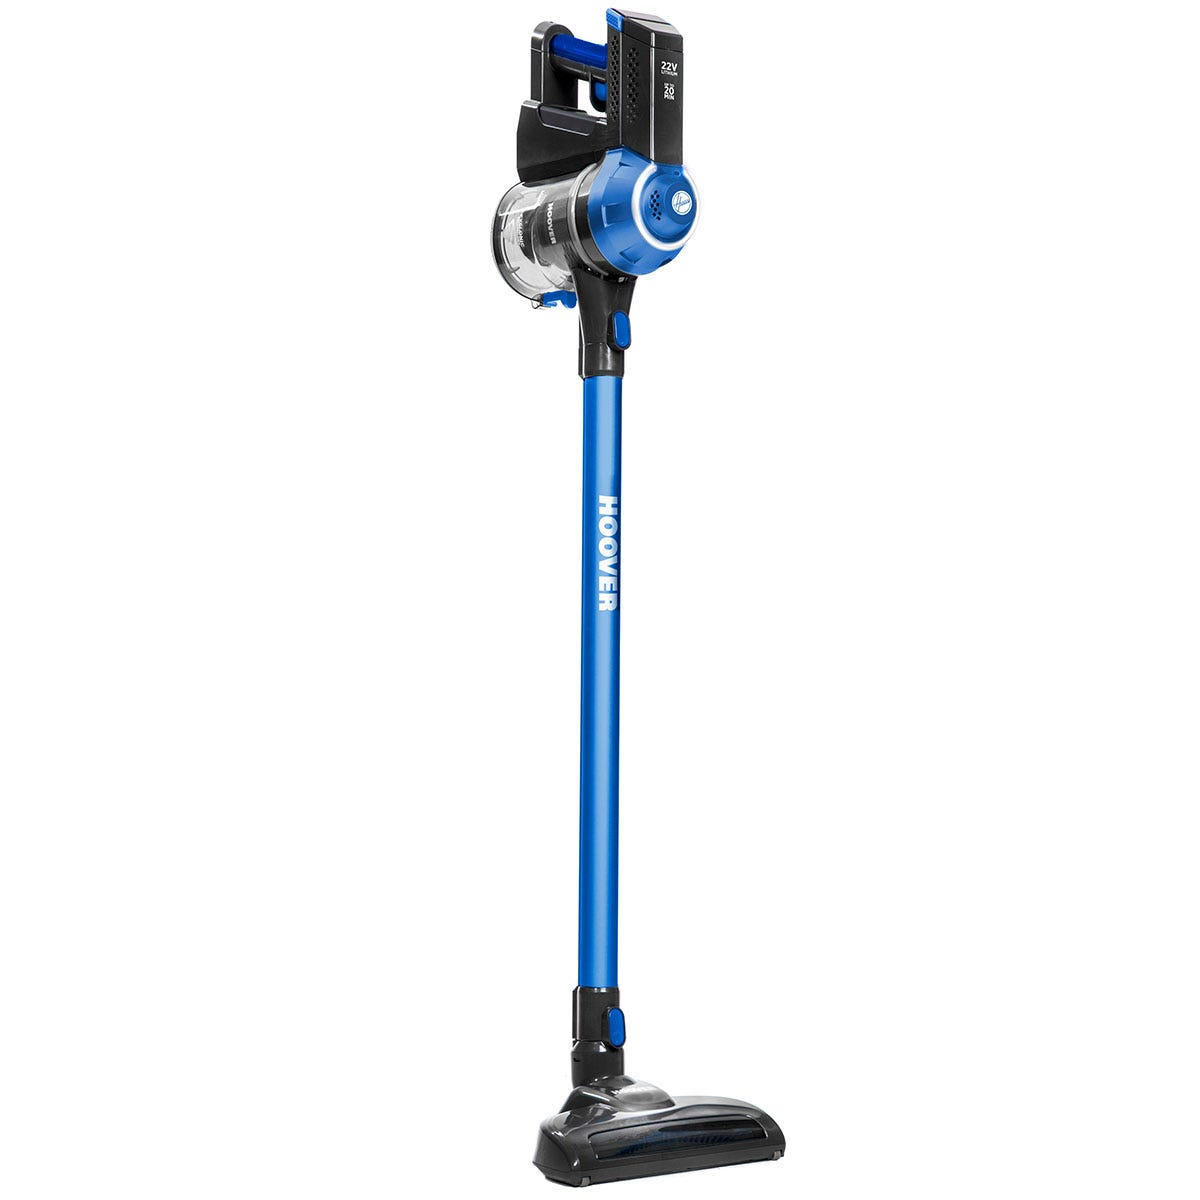 Hoover FD22L Freedom 2-in-1 Cordless 22V Vacuum Cleaner - Black and Blue